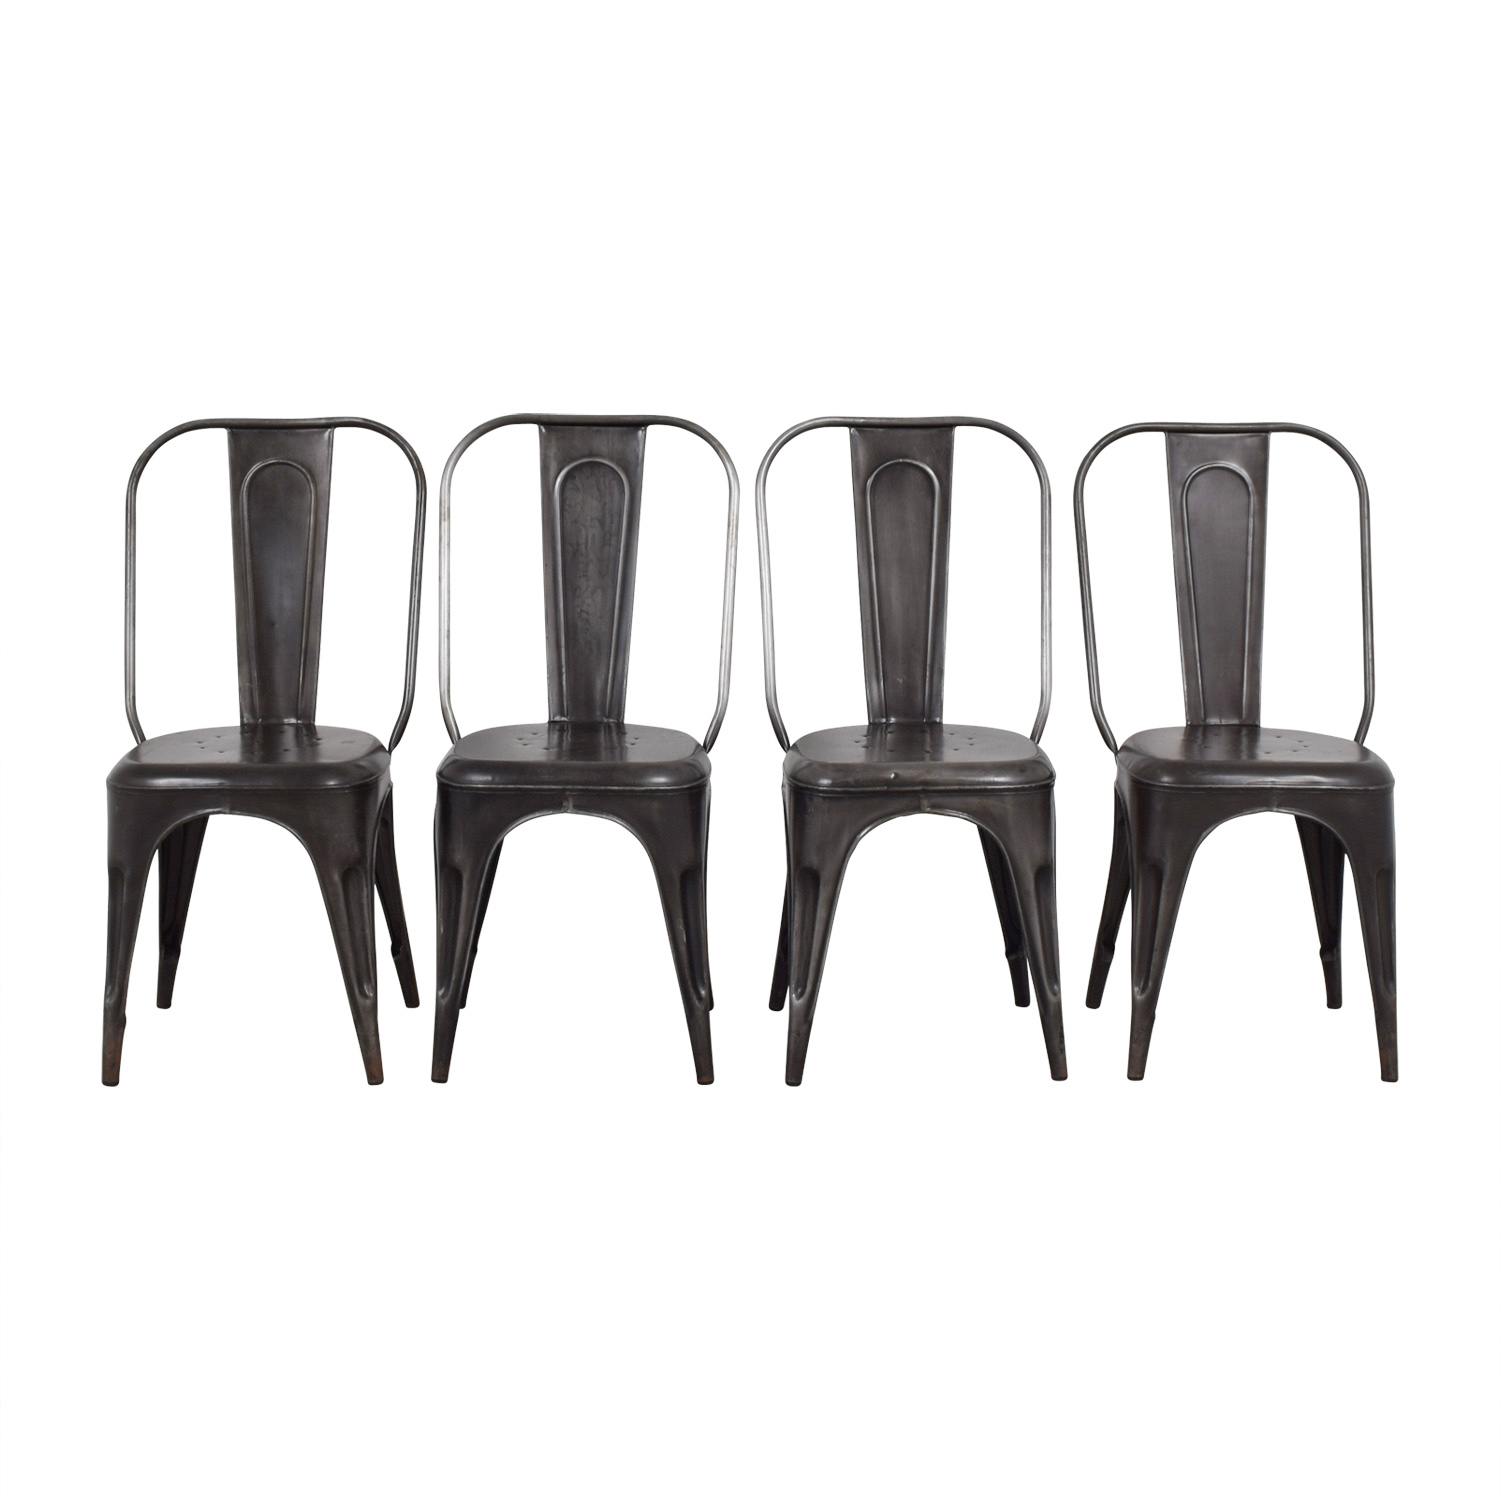 Arhaus Arhaus Bryant Dining Side Chairs for sale